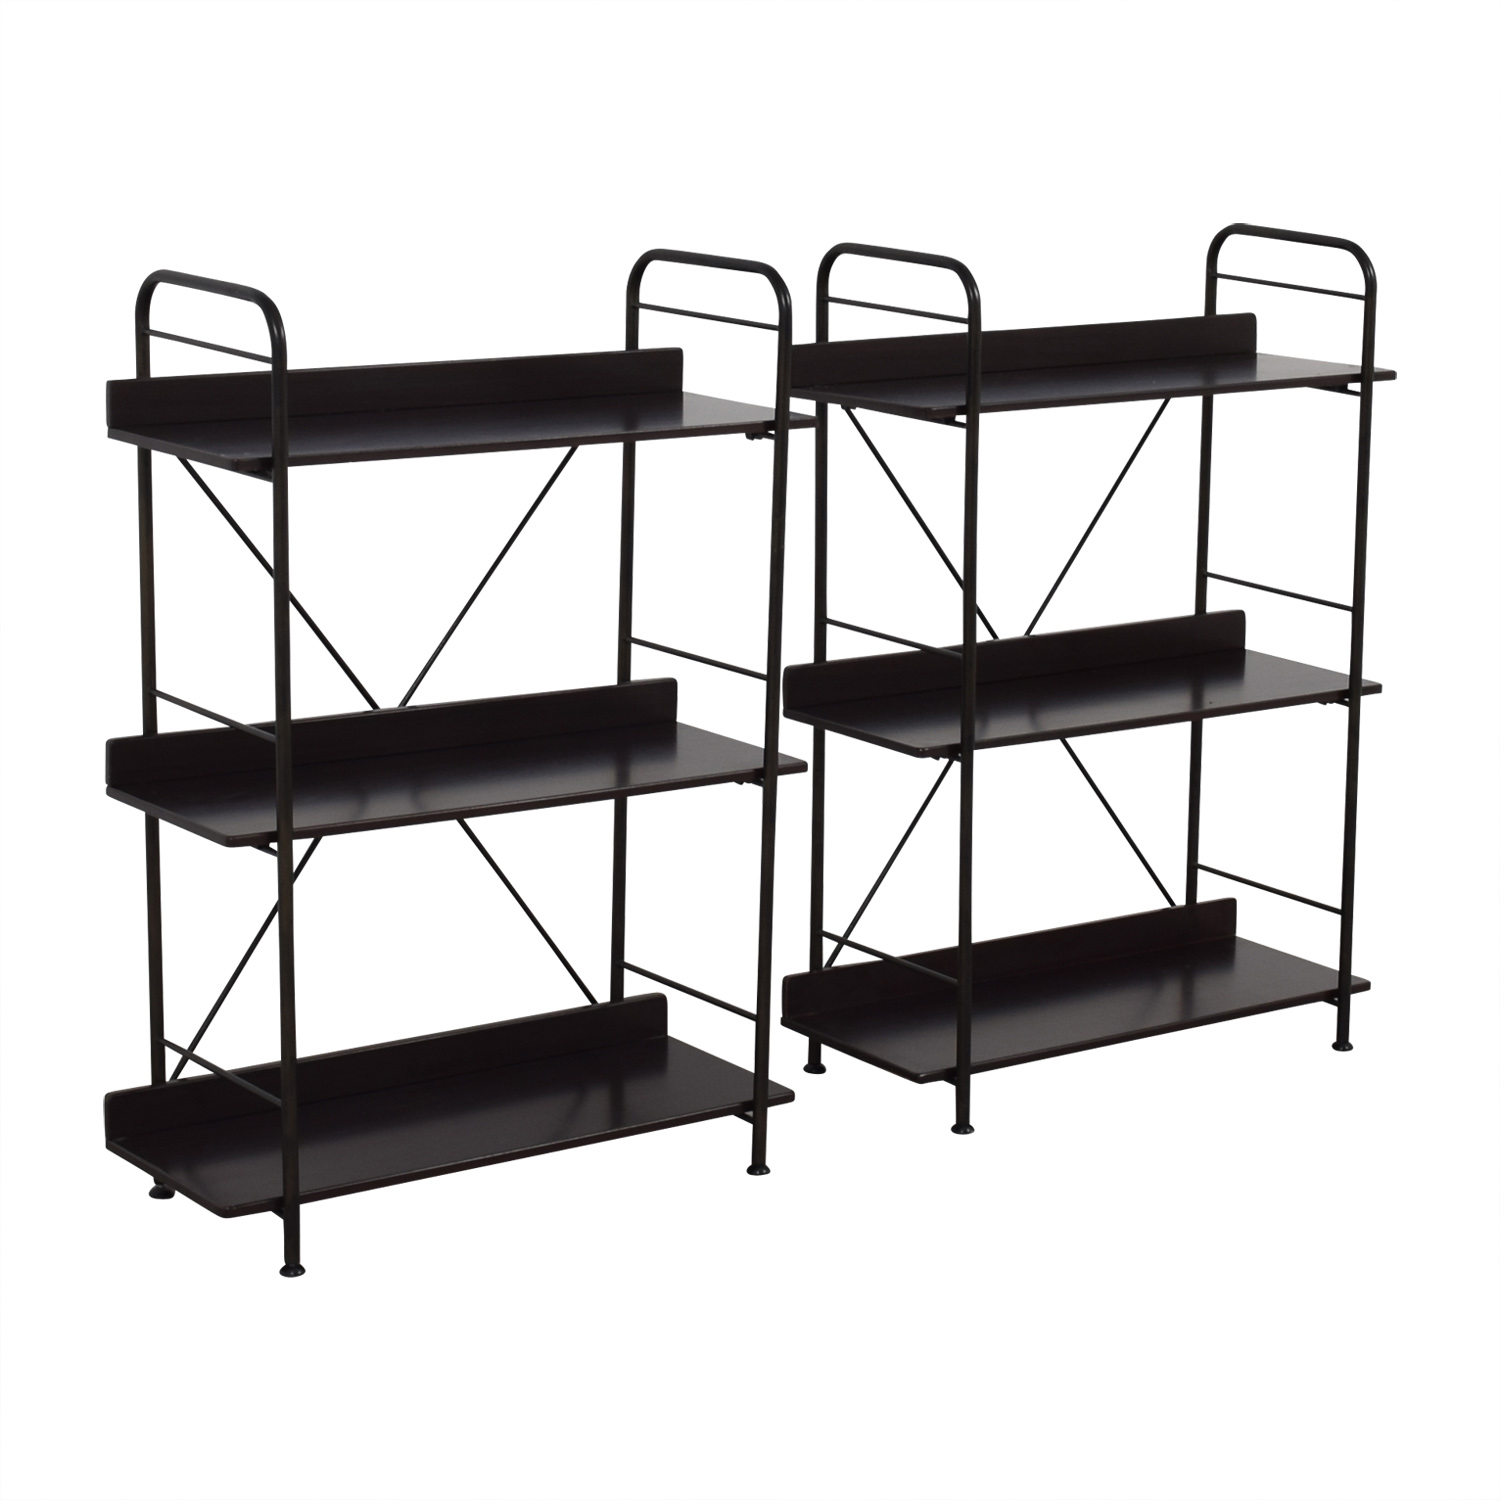 86 Off Ikea Ikea Black Bookcases Or Storage Shelves